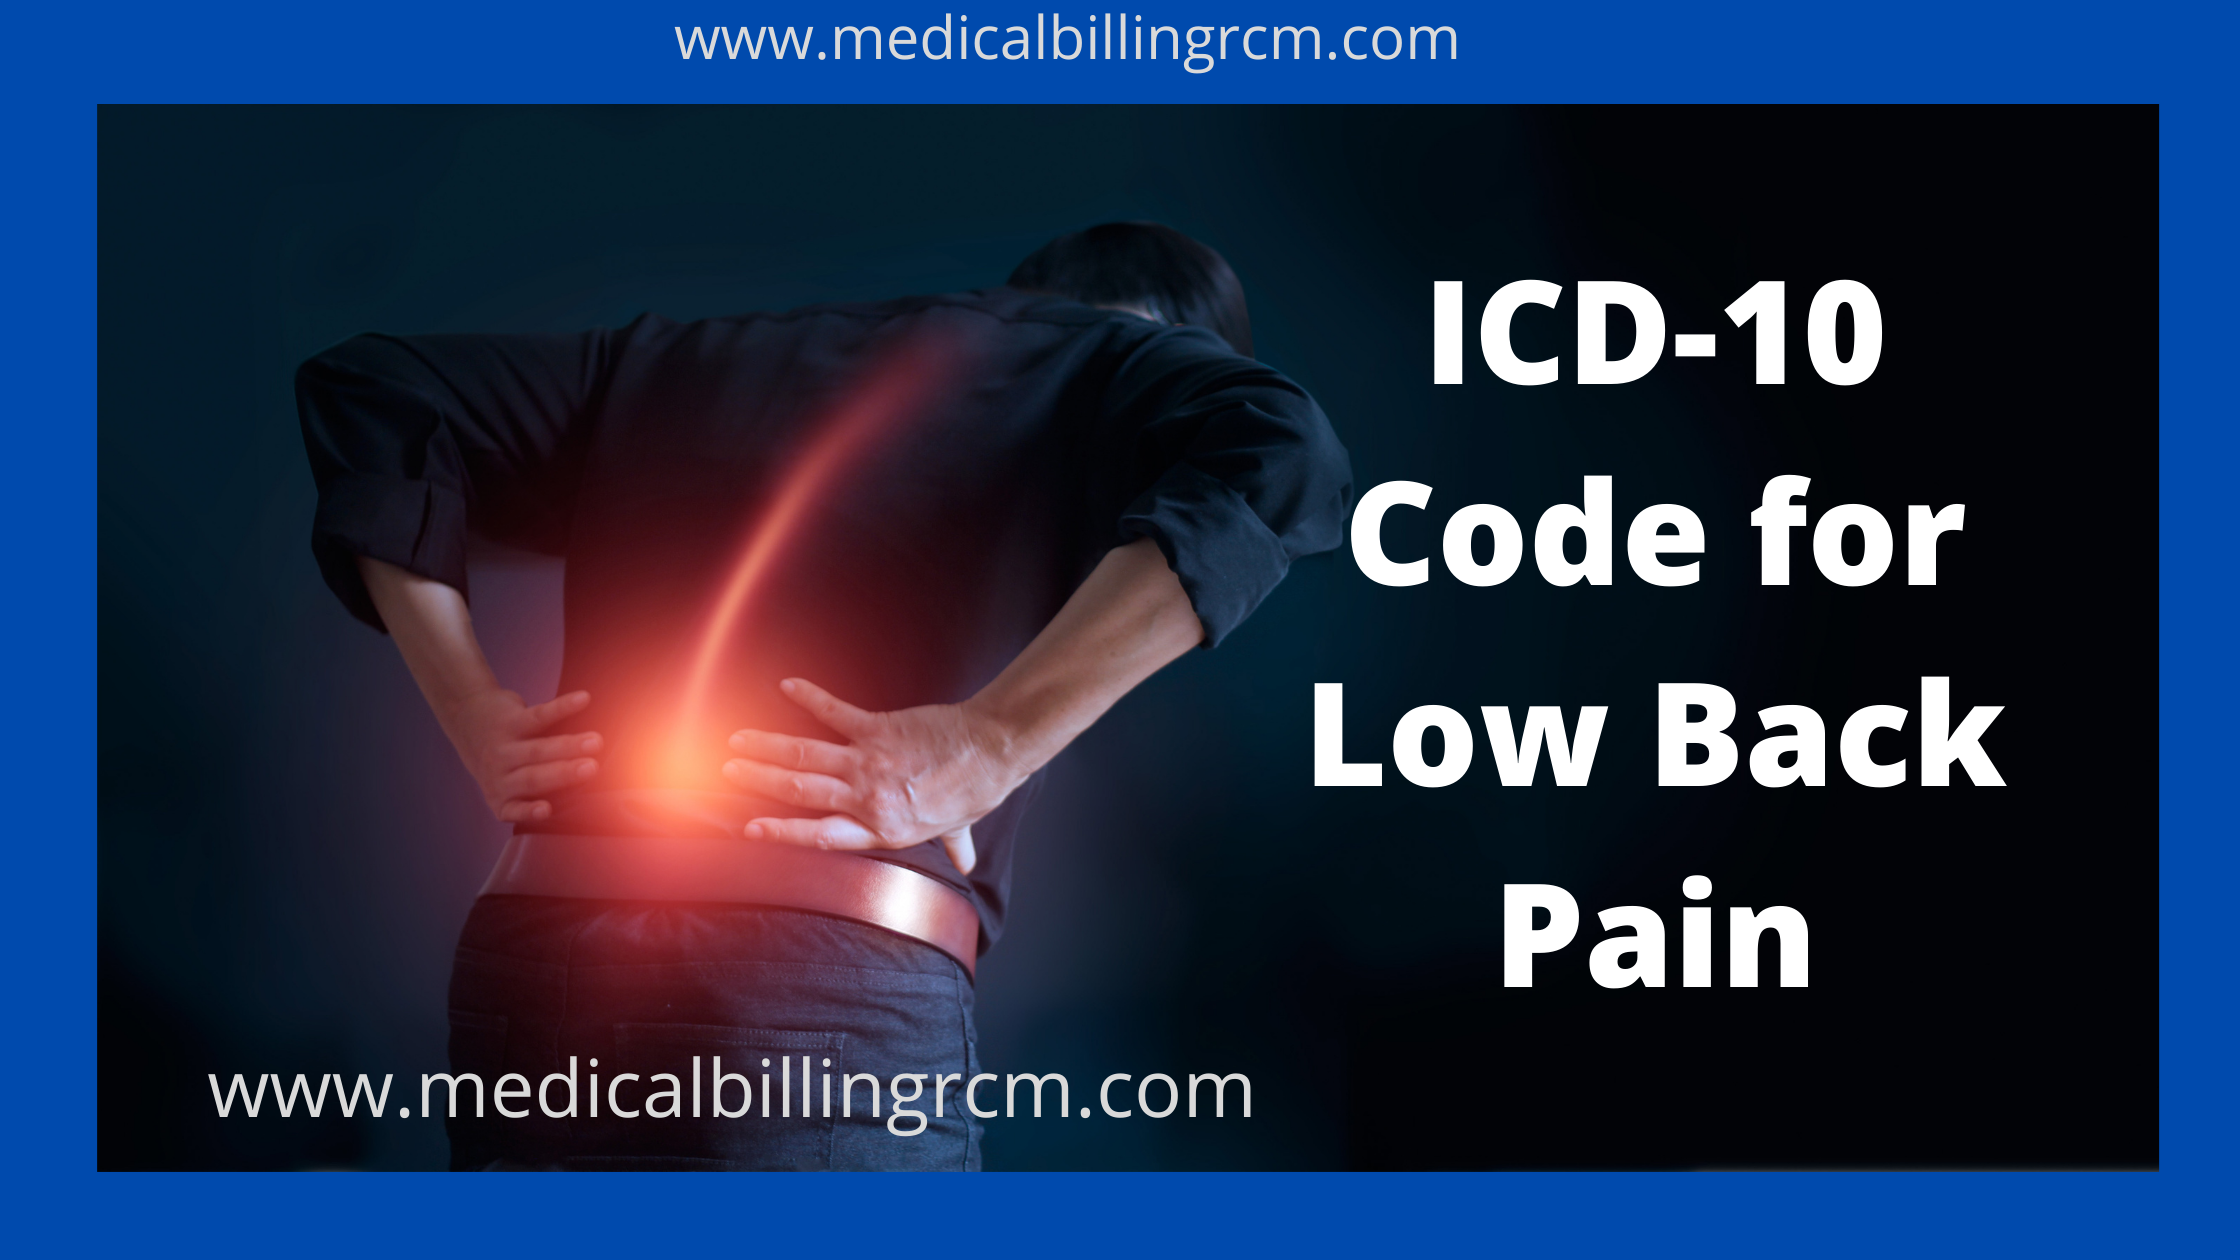 low back pain icd 10